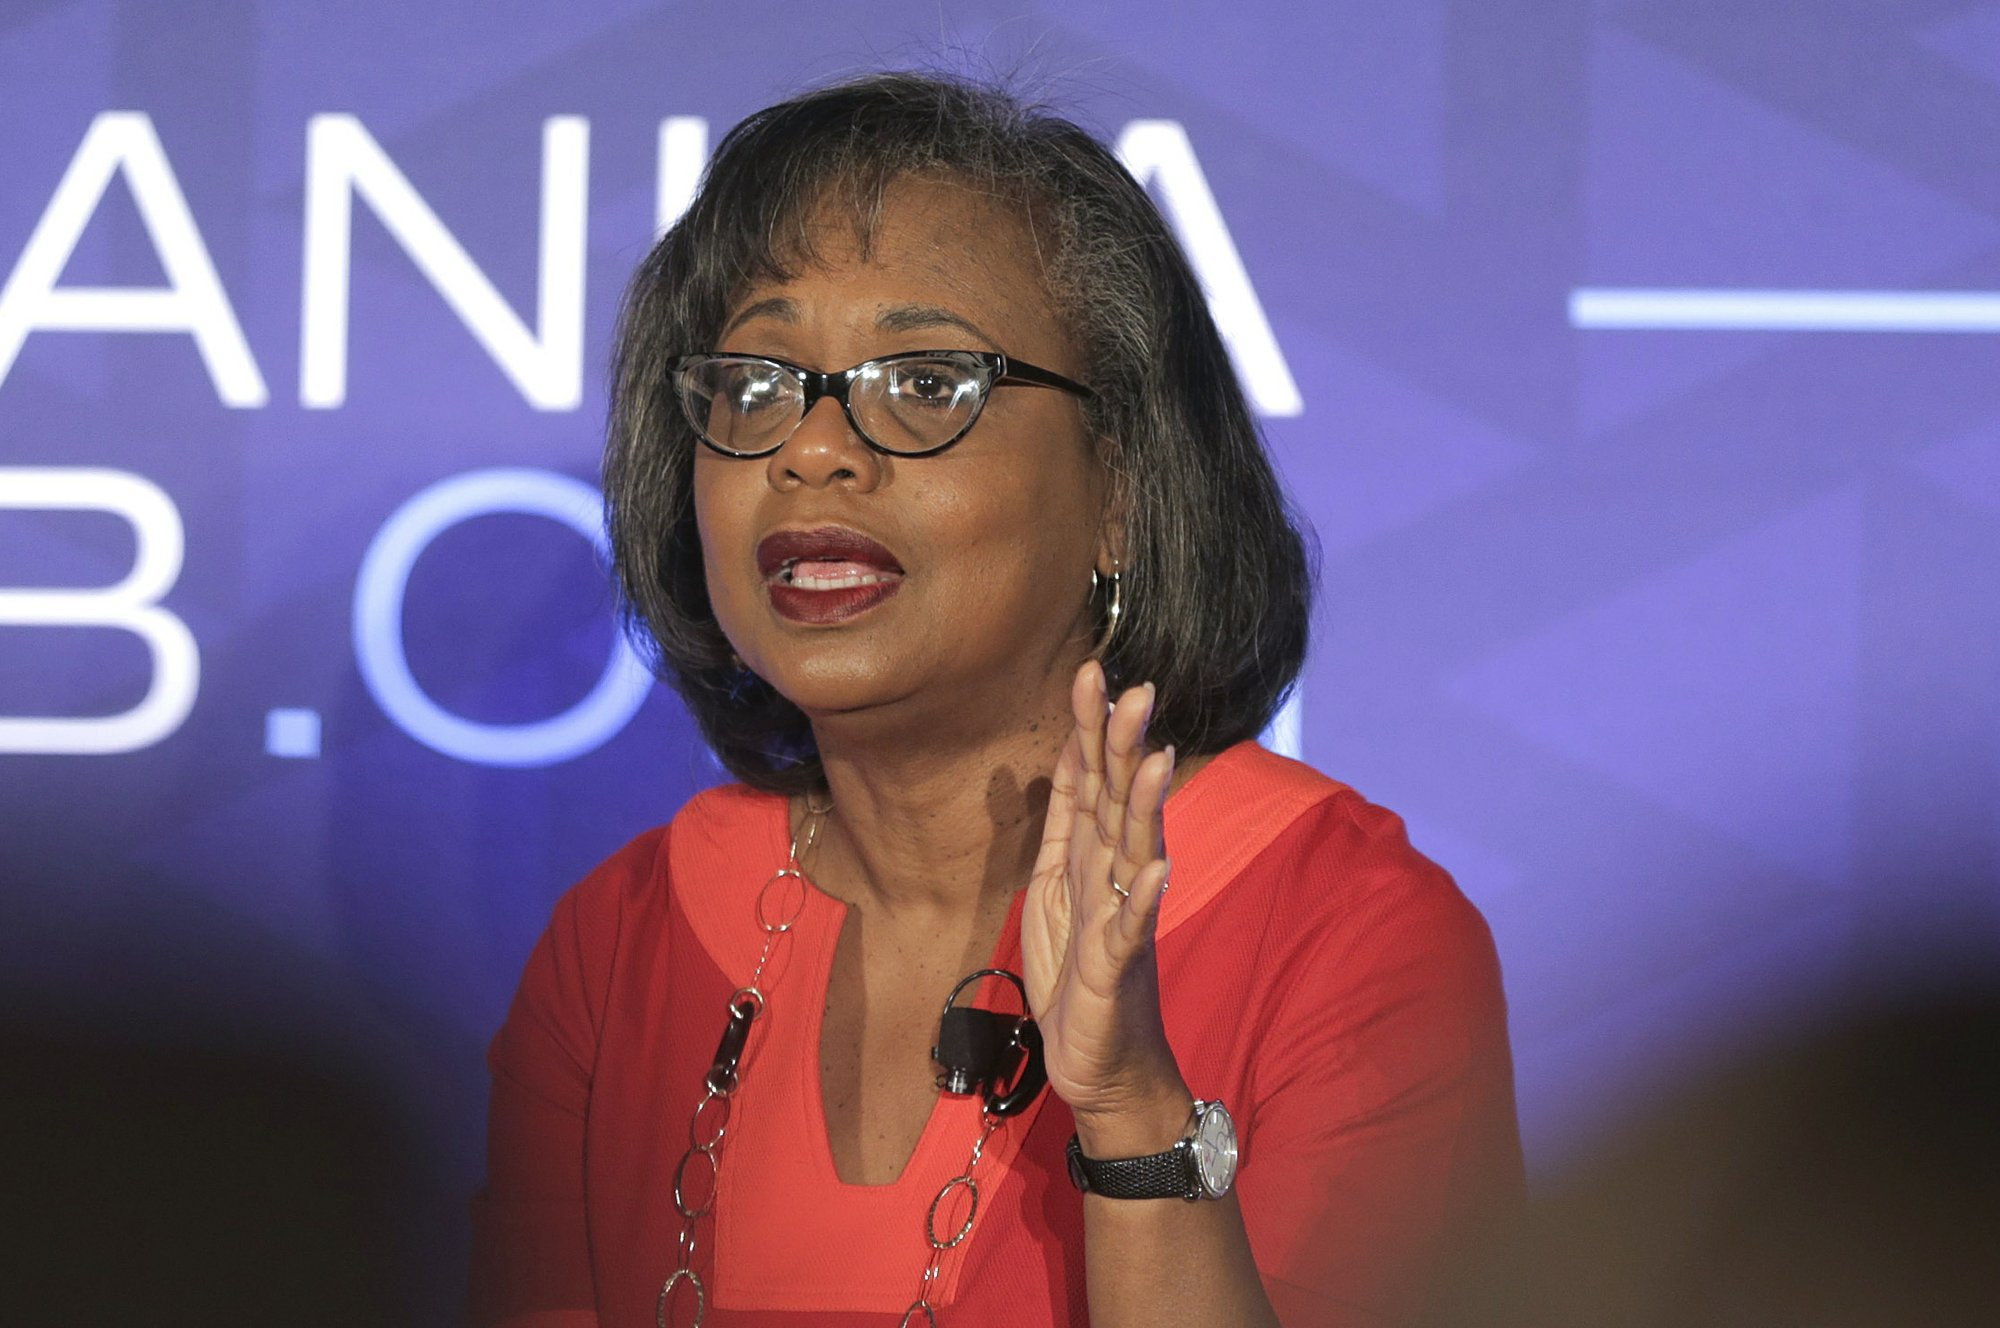 Anita Hill struck by Kavanaugh's anger versus accuser's calm